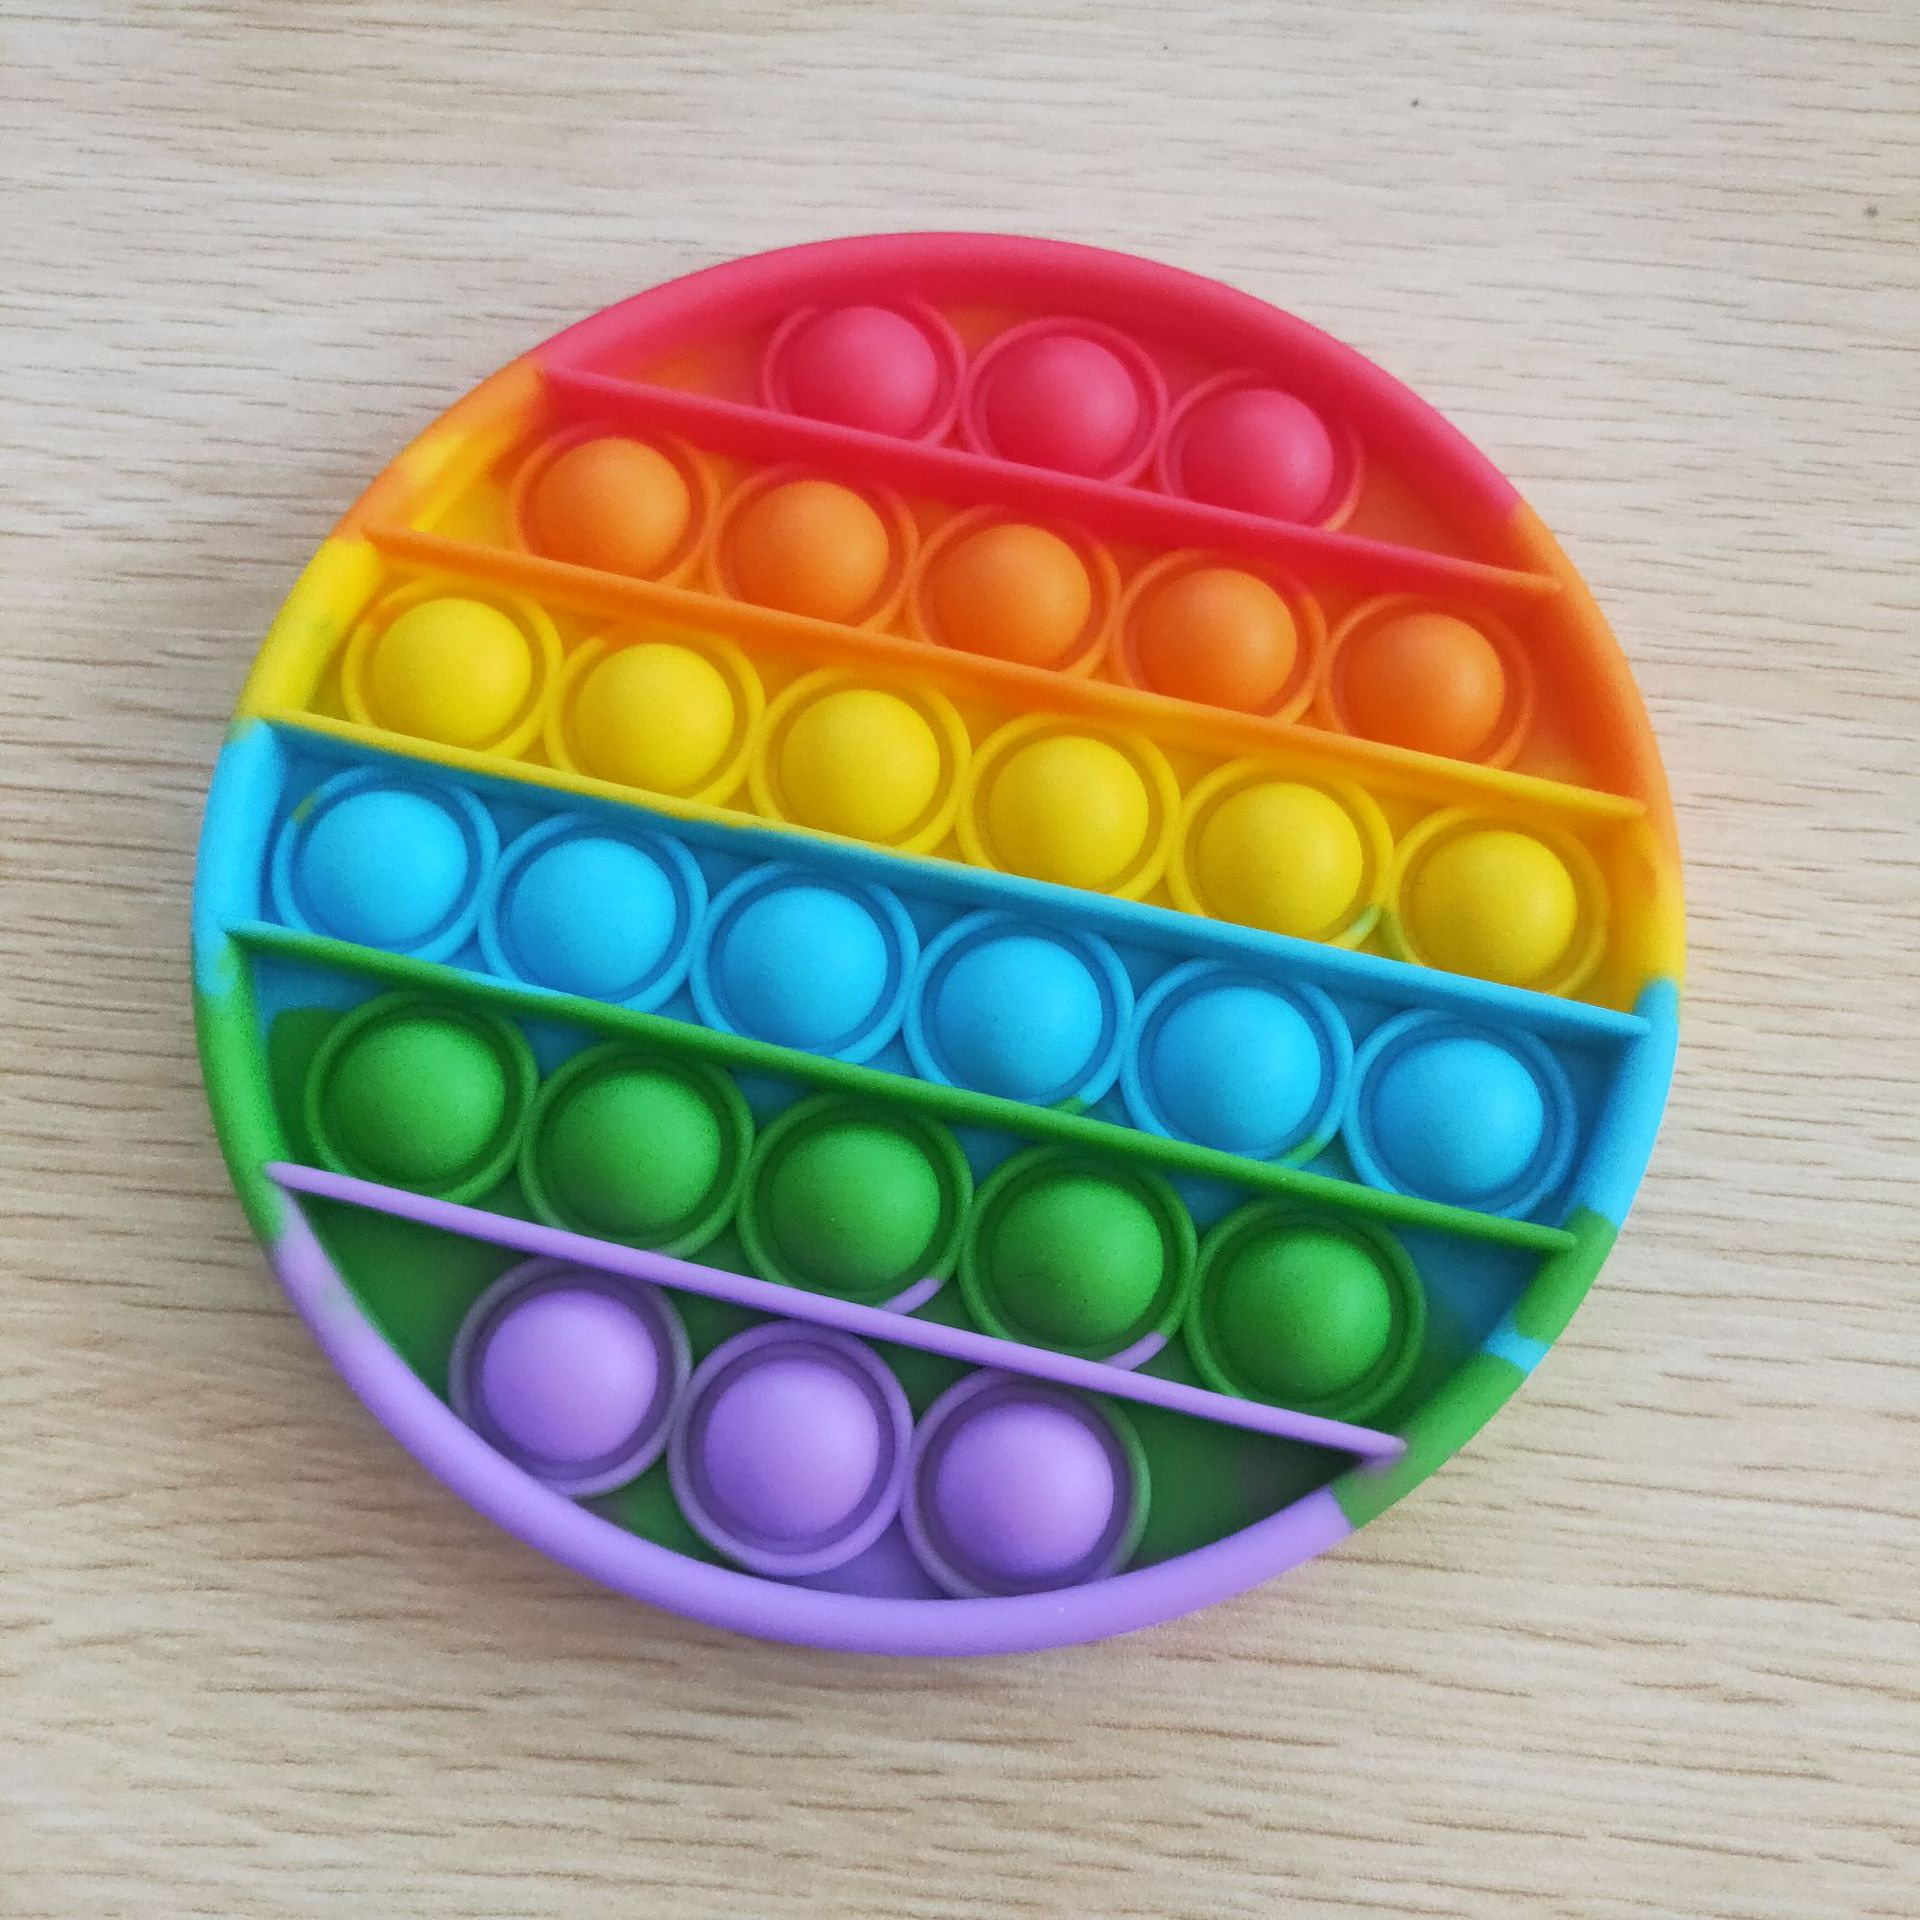 Sensory Toy Playing-Board Bubble Fidget Square Stress-Reliever Rainbow-Color Round Push-Pop img2